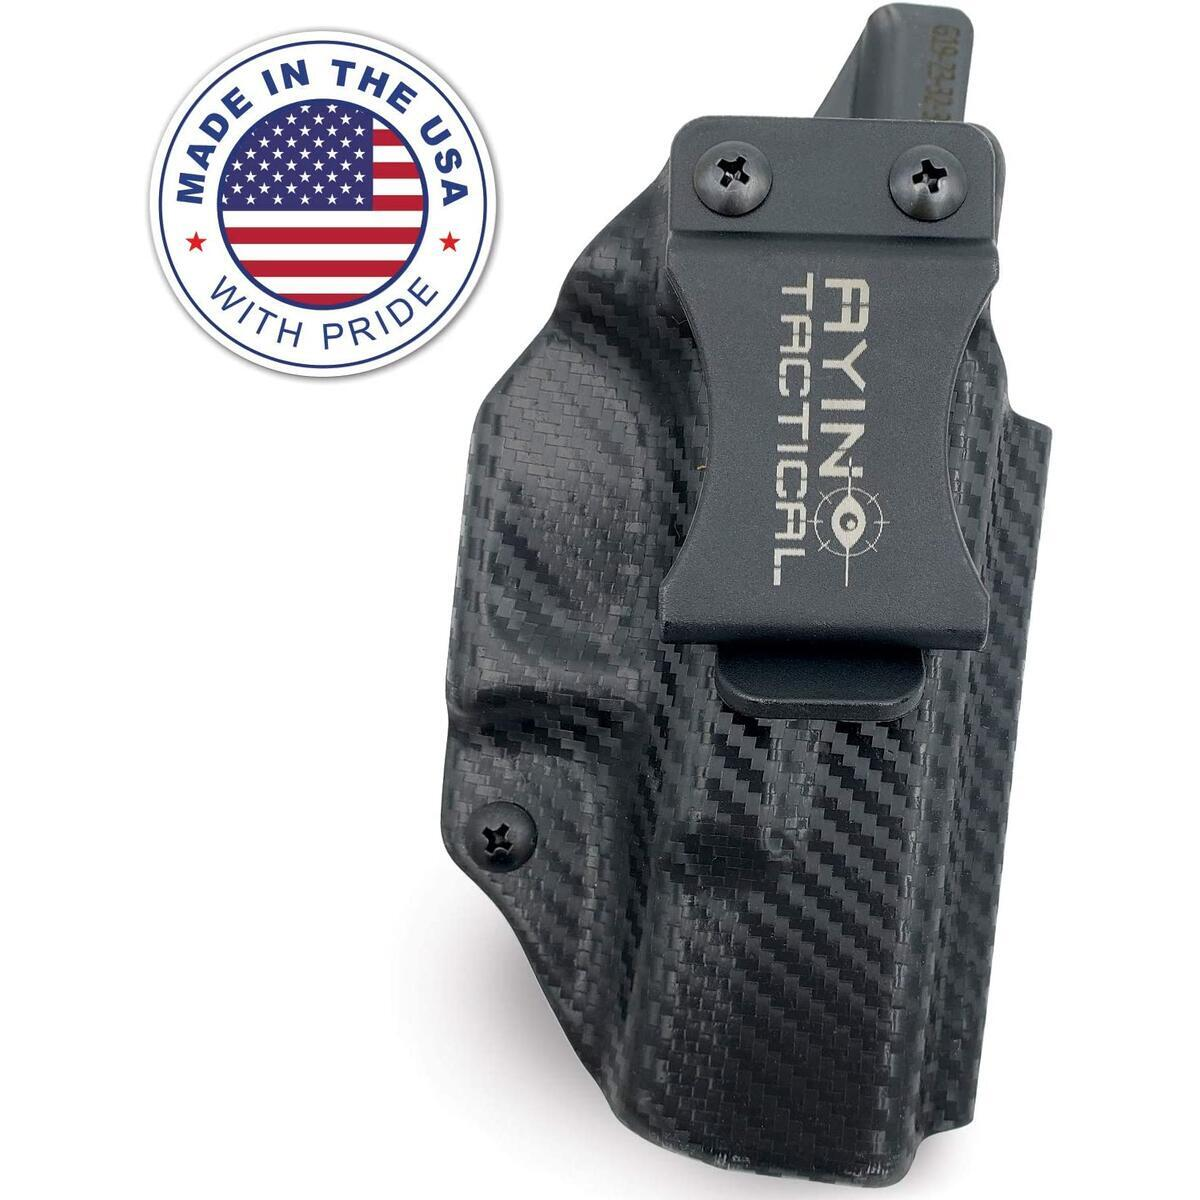 AYIN Concealed Carry IWB OWB Right-Handed Holster for Glock 19/23/32/36/45, Can Be Used Inside The Waistband or Outside The Waistband, Optics Cut, Positive Adjustable Retention, Made in USA